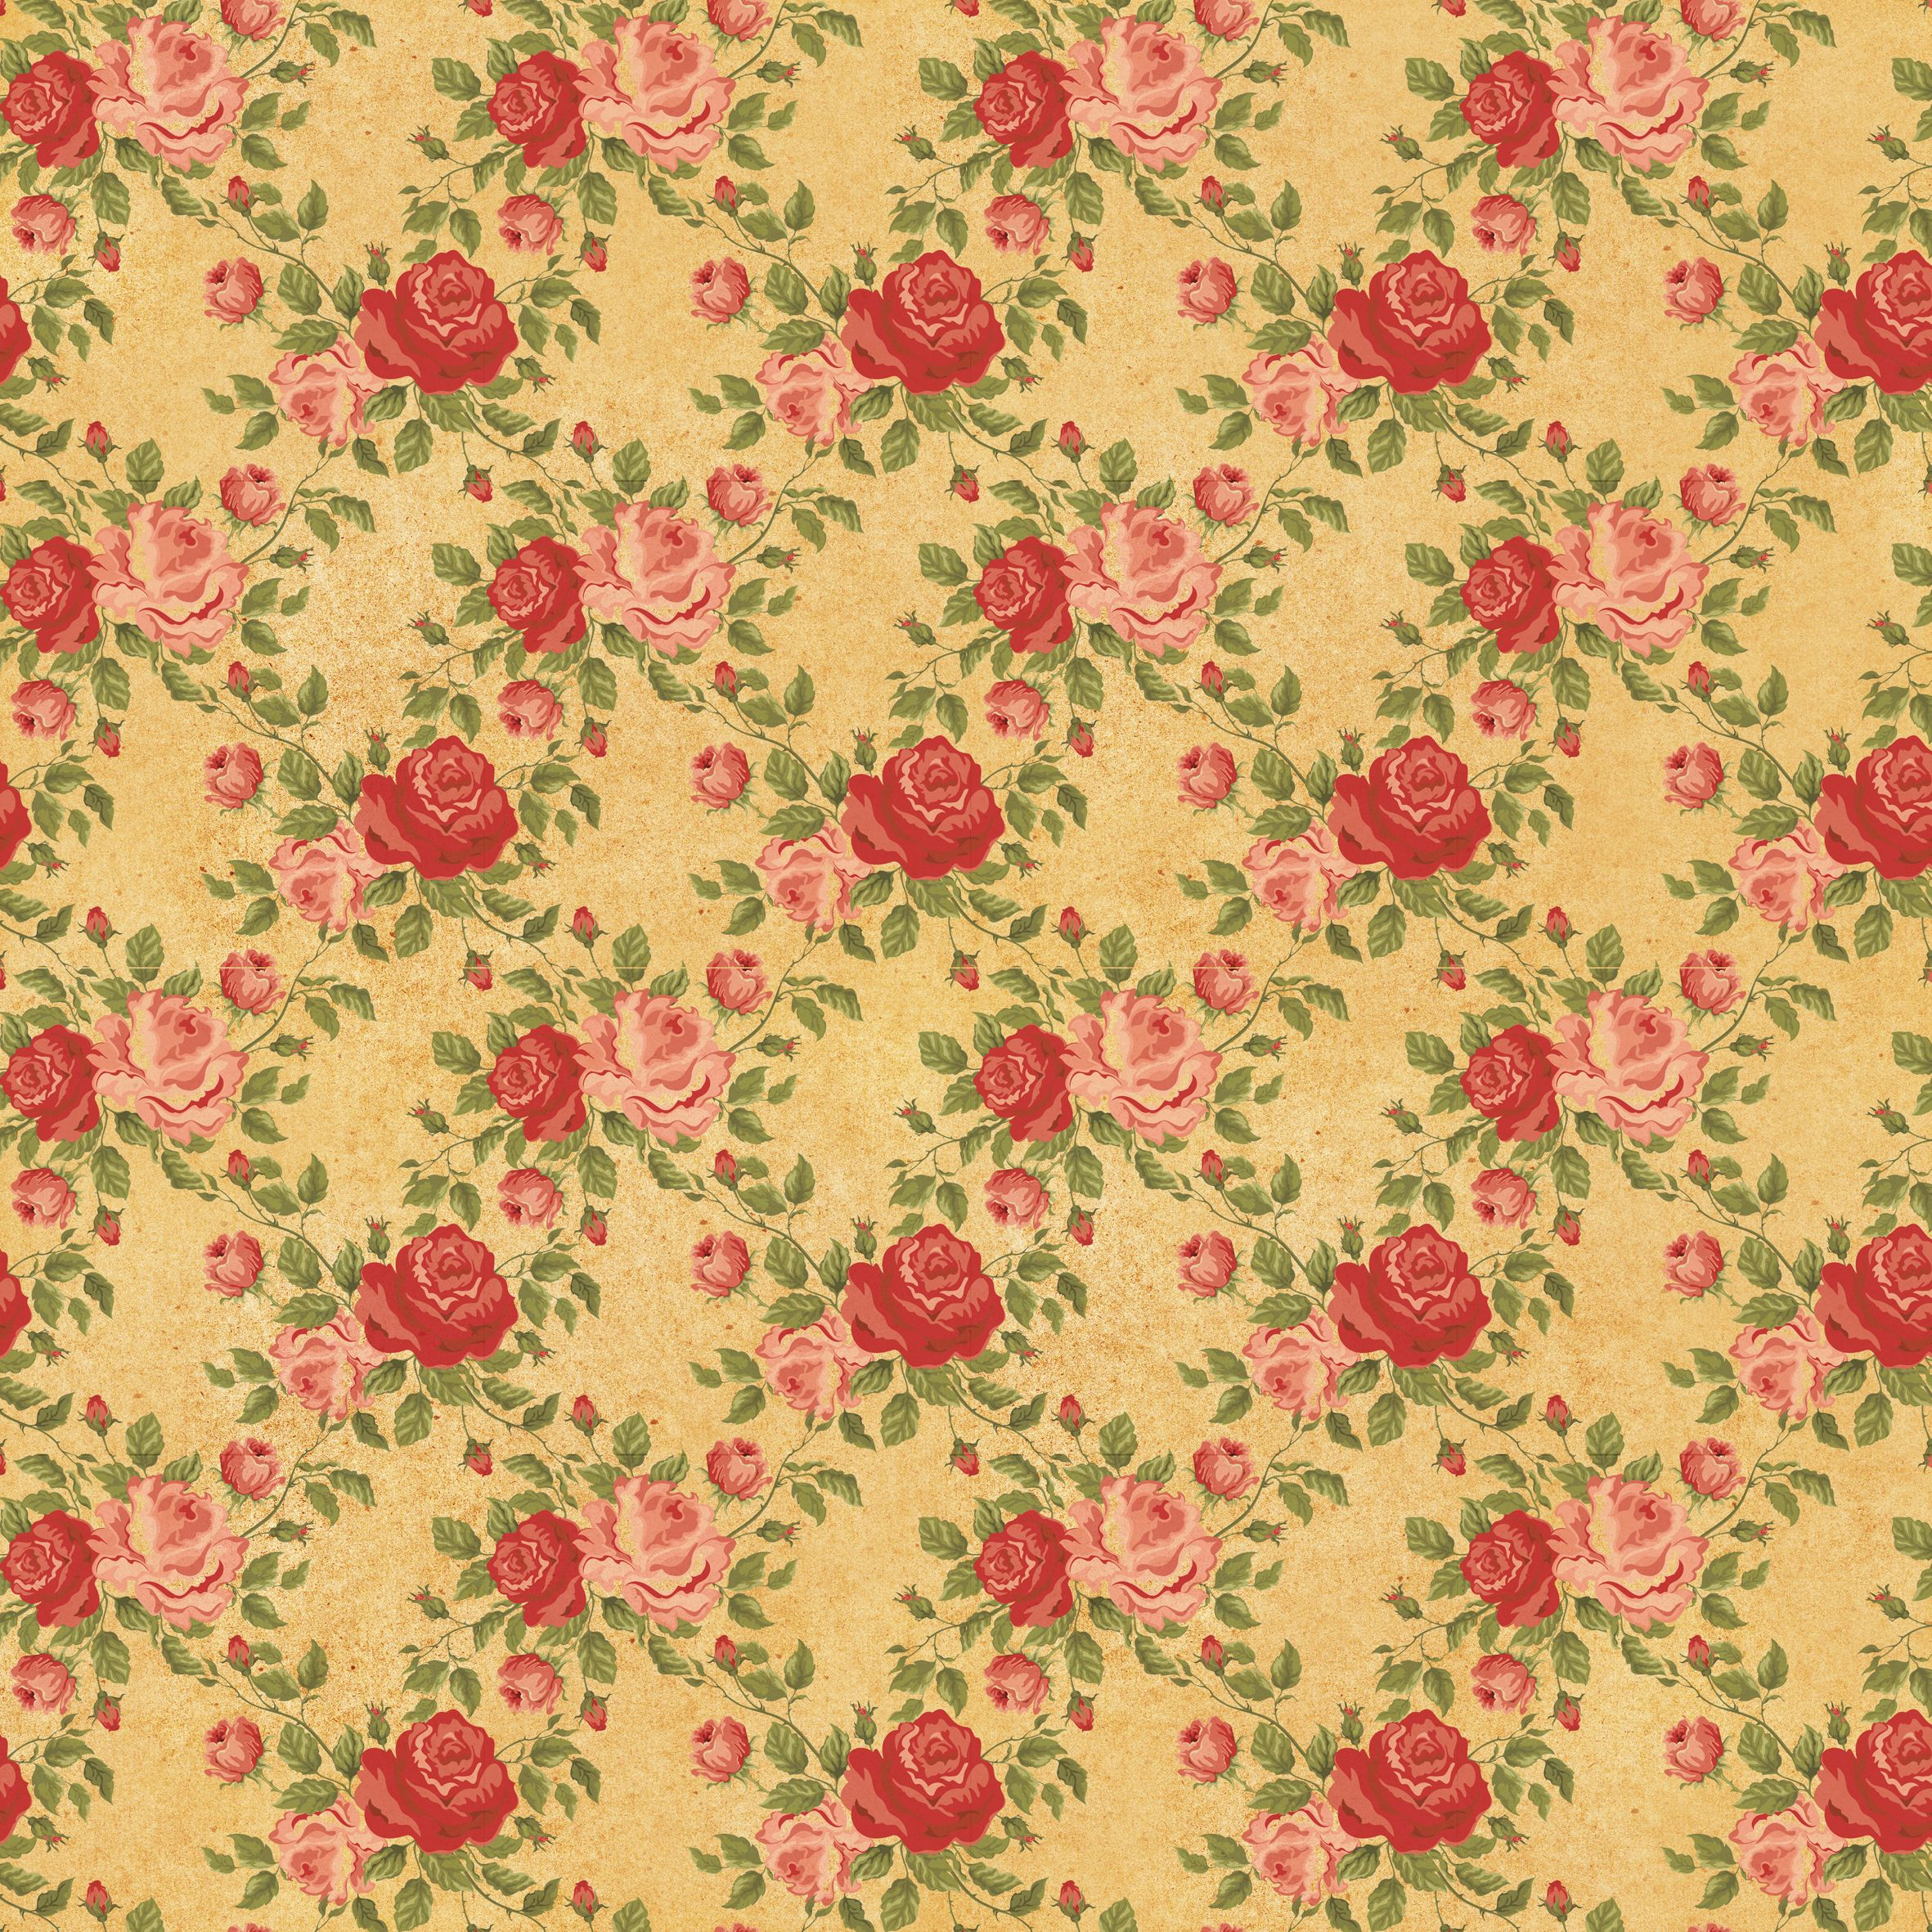 For A Slightly Different Take On The Vintage Floral Pattern Here Are 2 New Fabrics